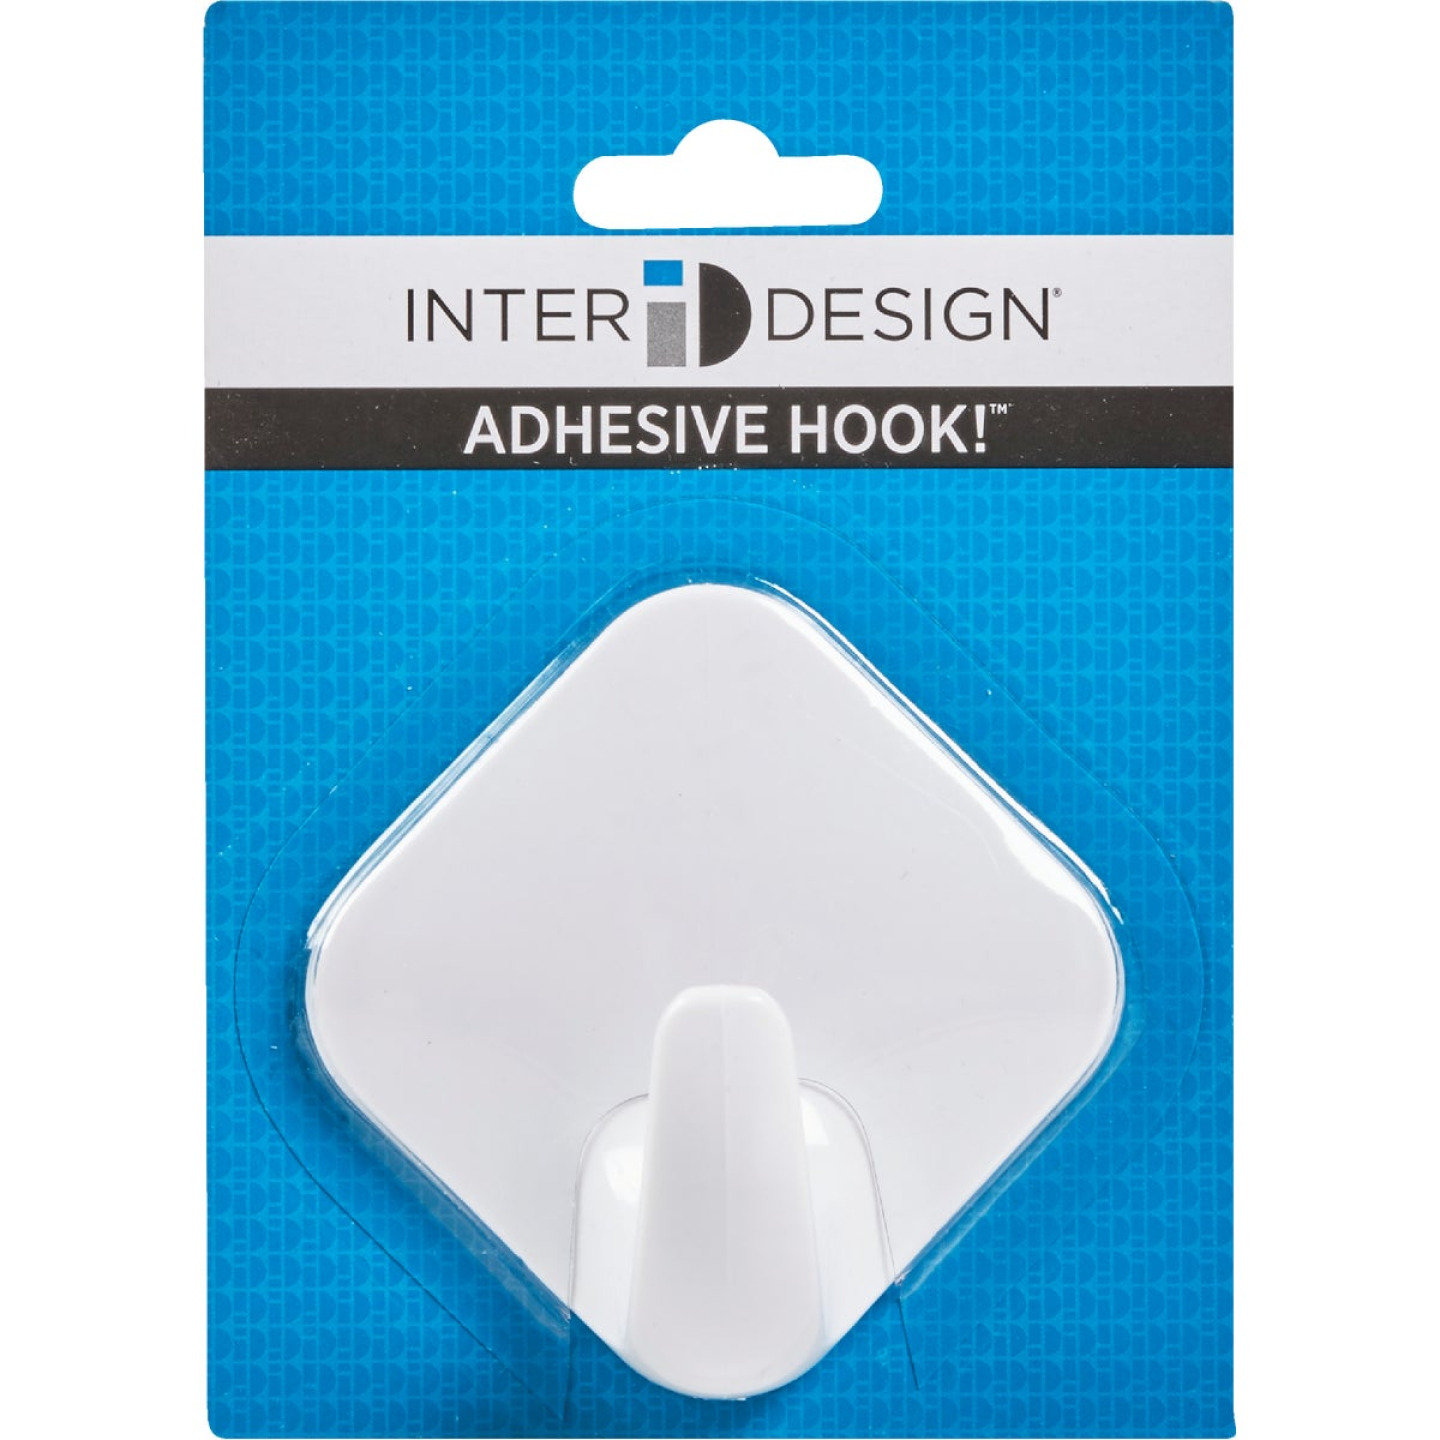 InterDesign Diamond 3 In. Self Adhesive Hook Image 2